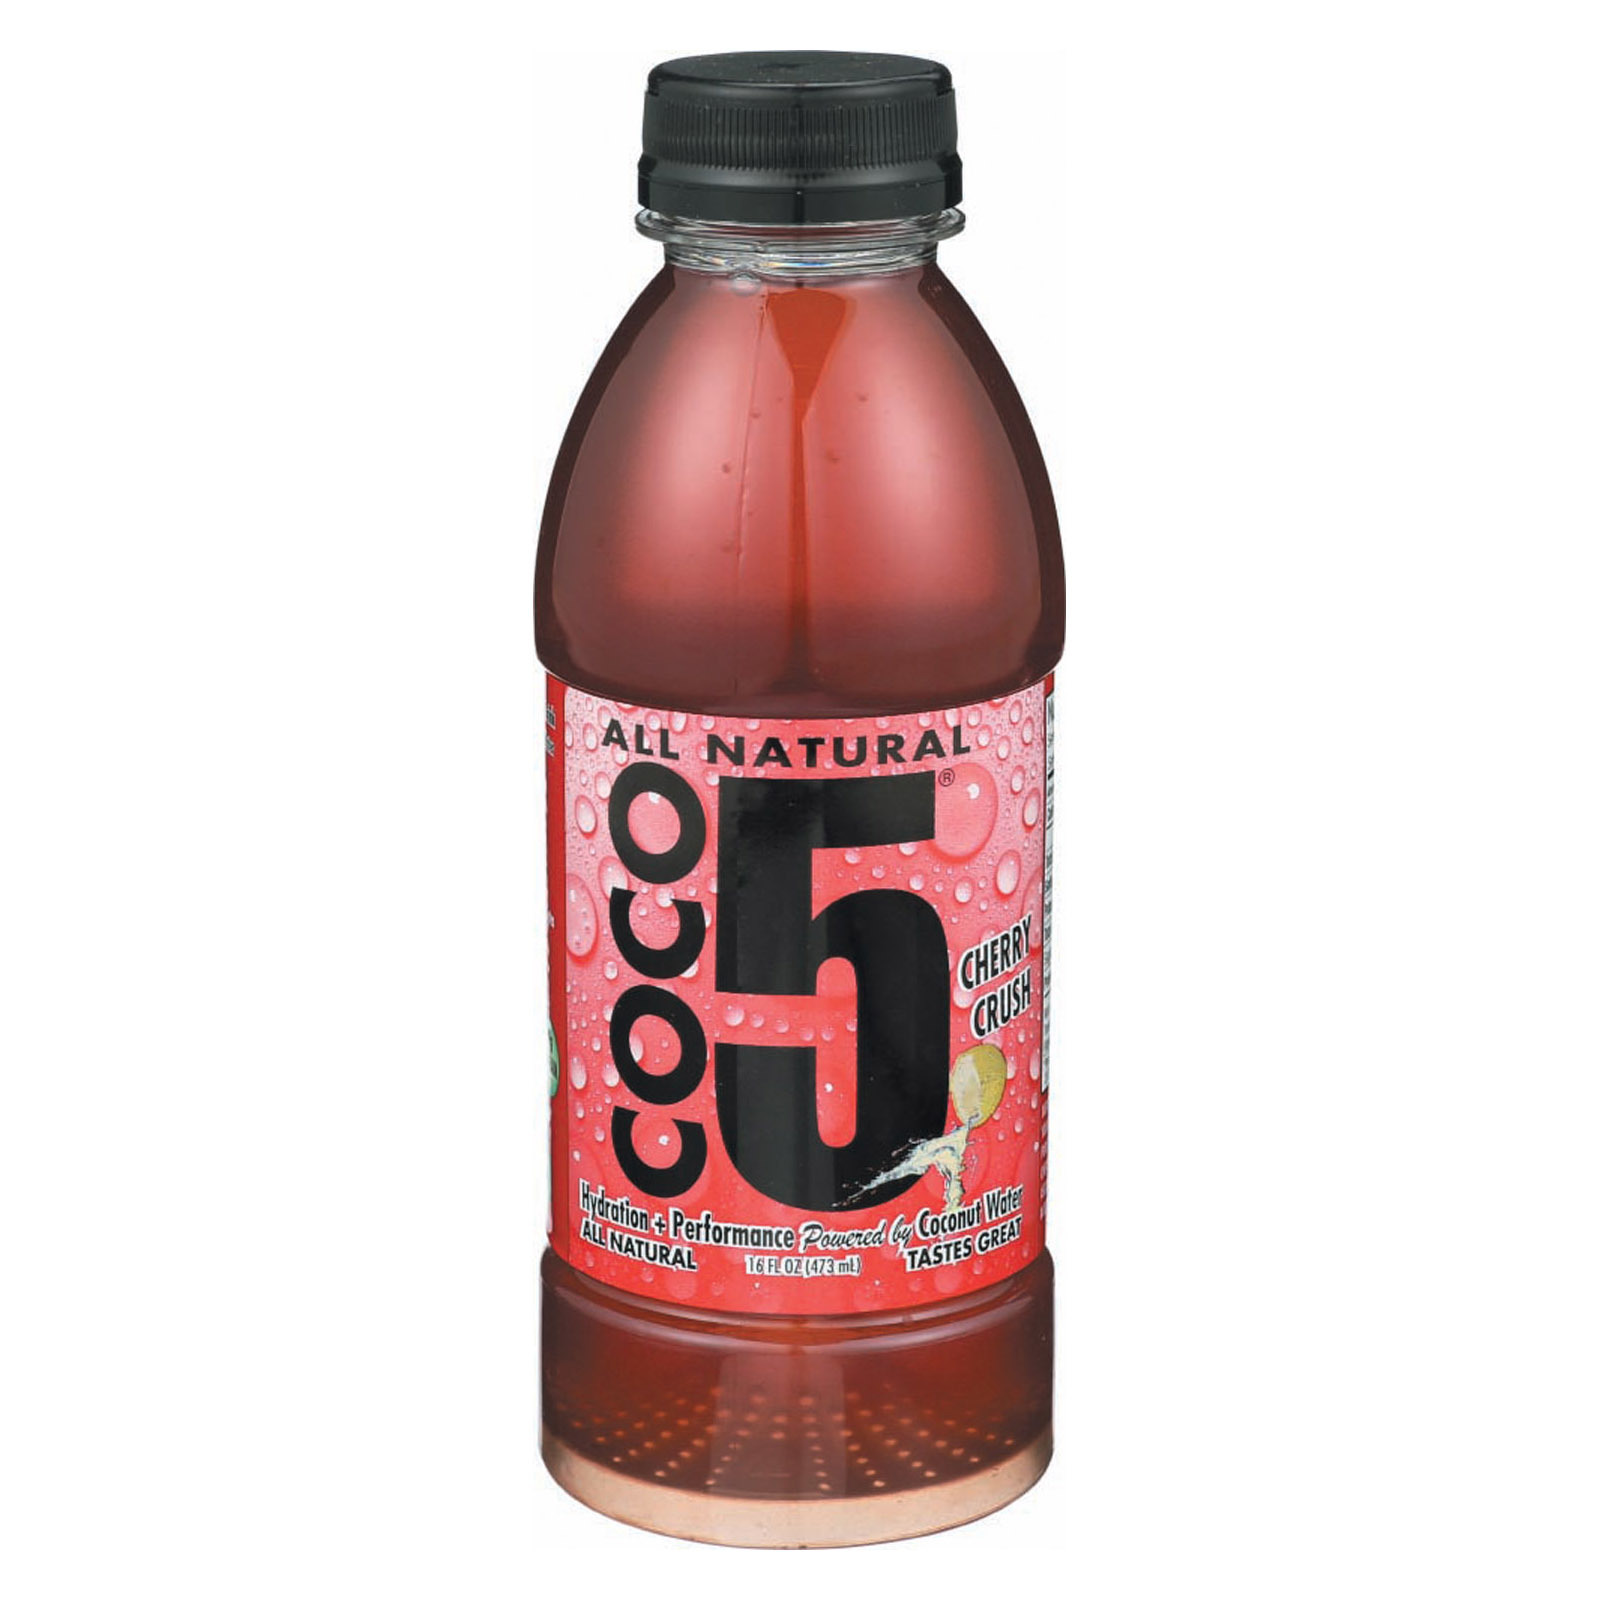 Coco5 Coconut Water - Cherry - Case of 12 - 16.9 fl oz